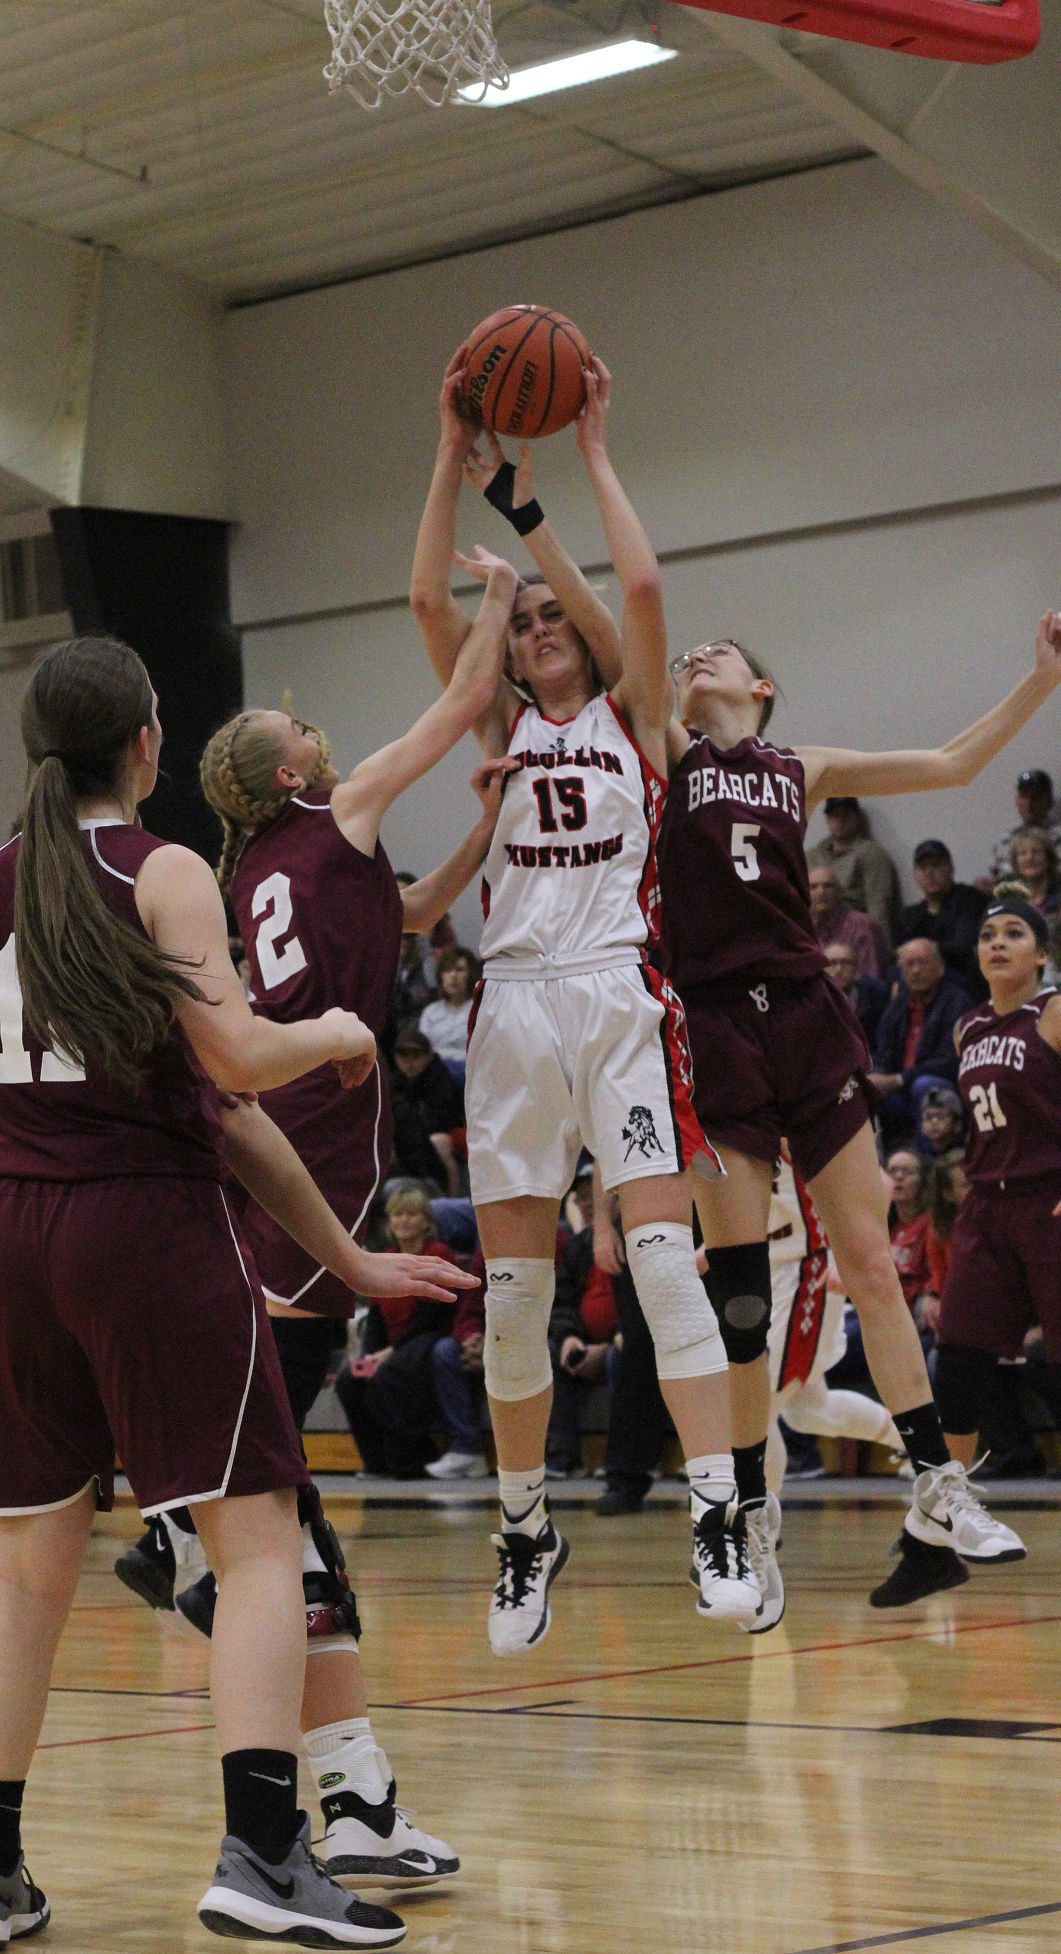 Mustangs trample Bearcats for state tourney berth